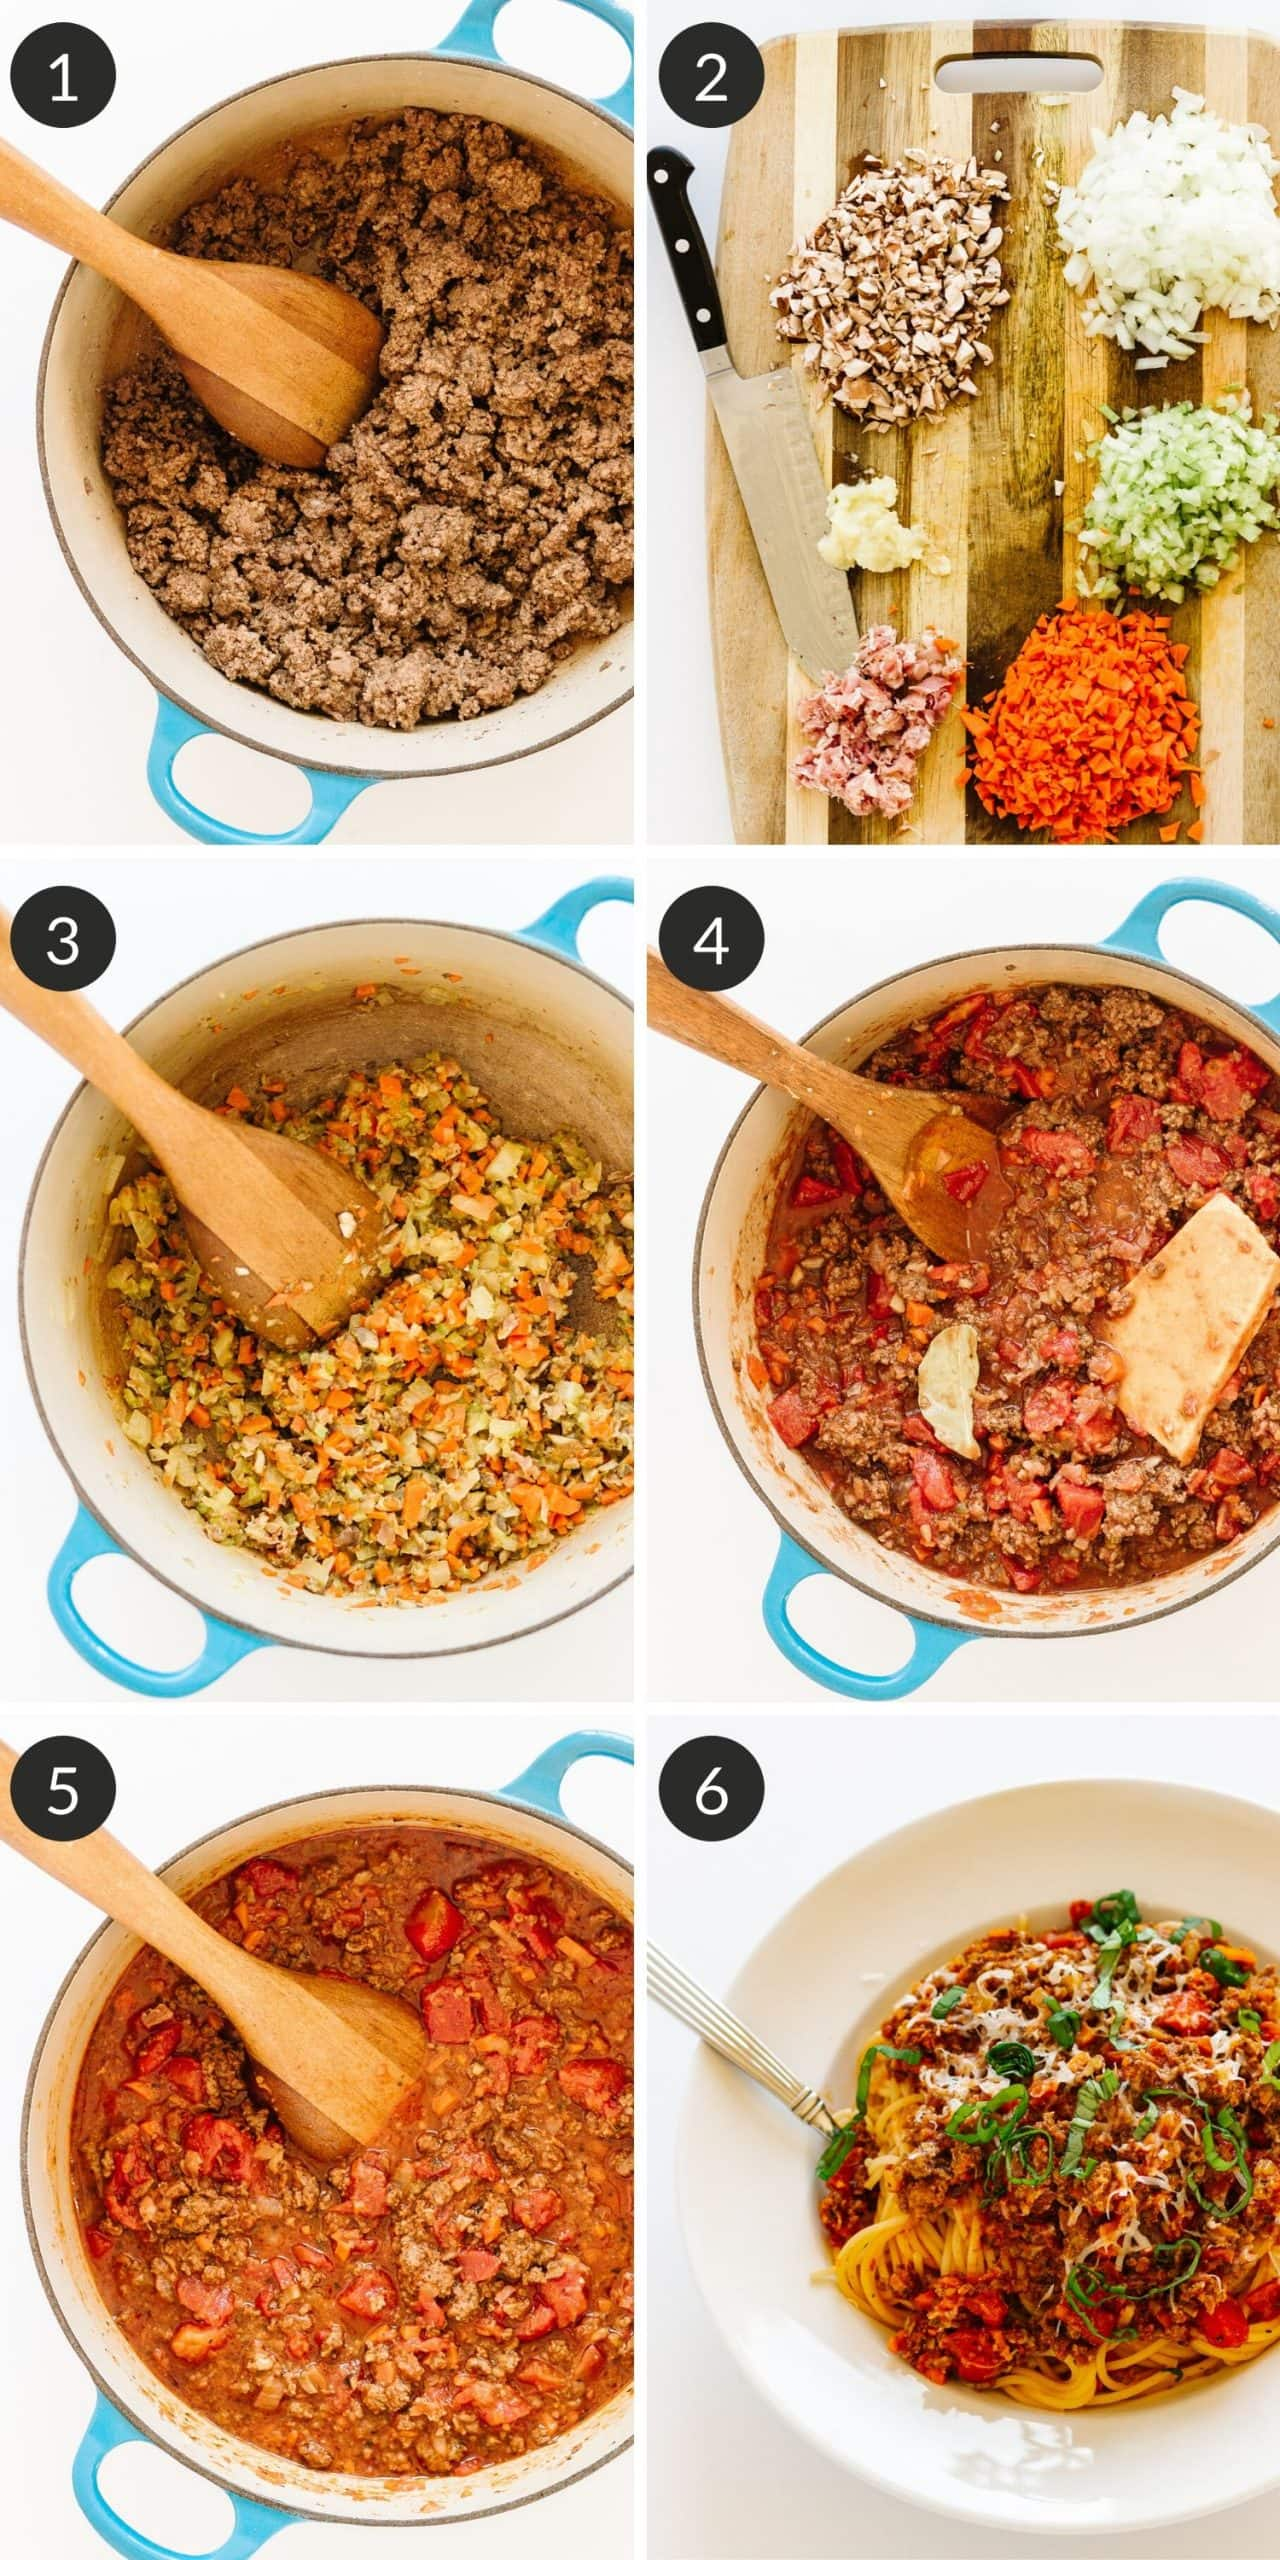 Step by step photo collage on how to make bolognese sauce